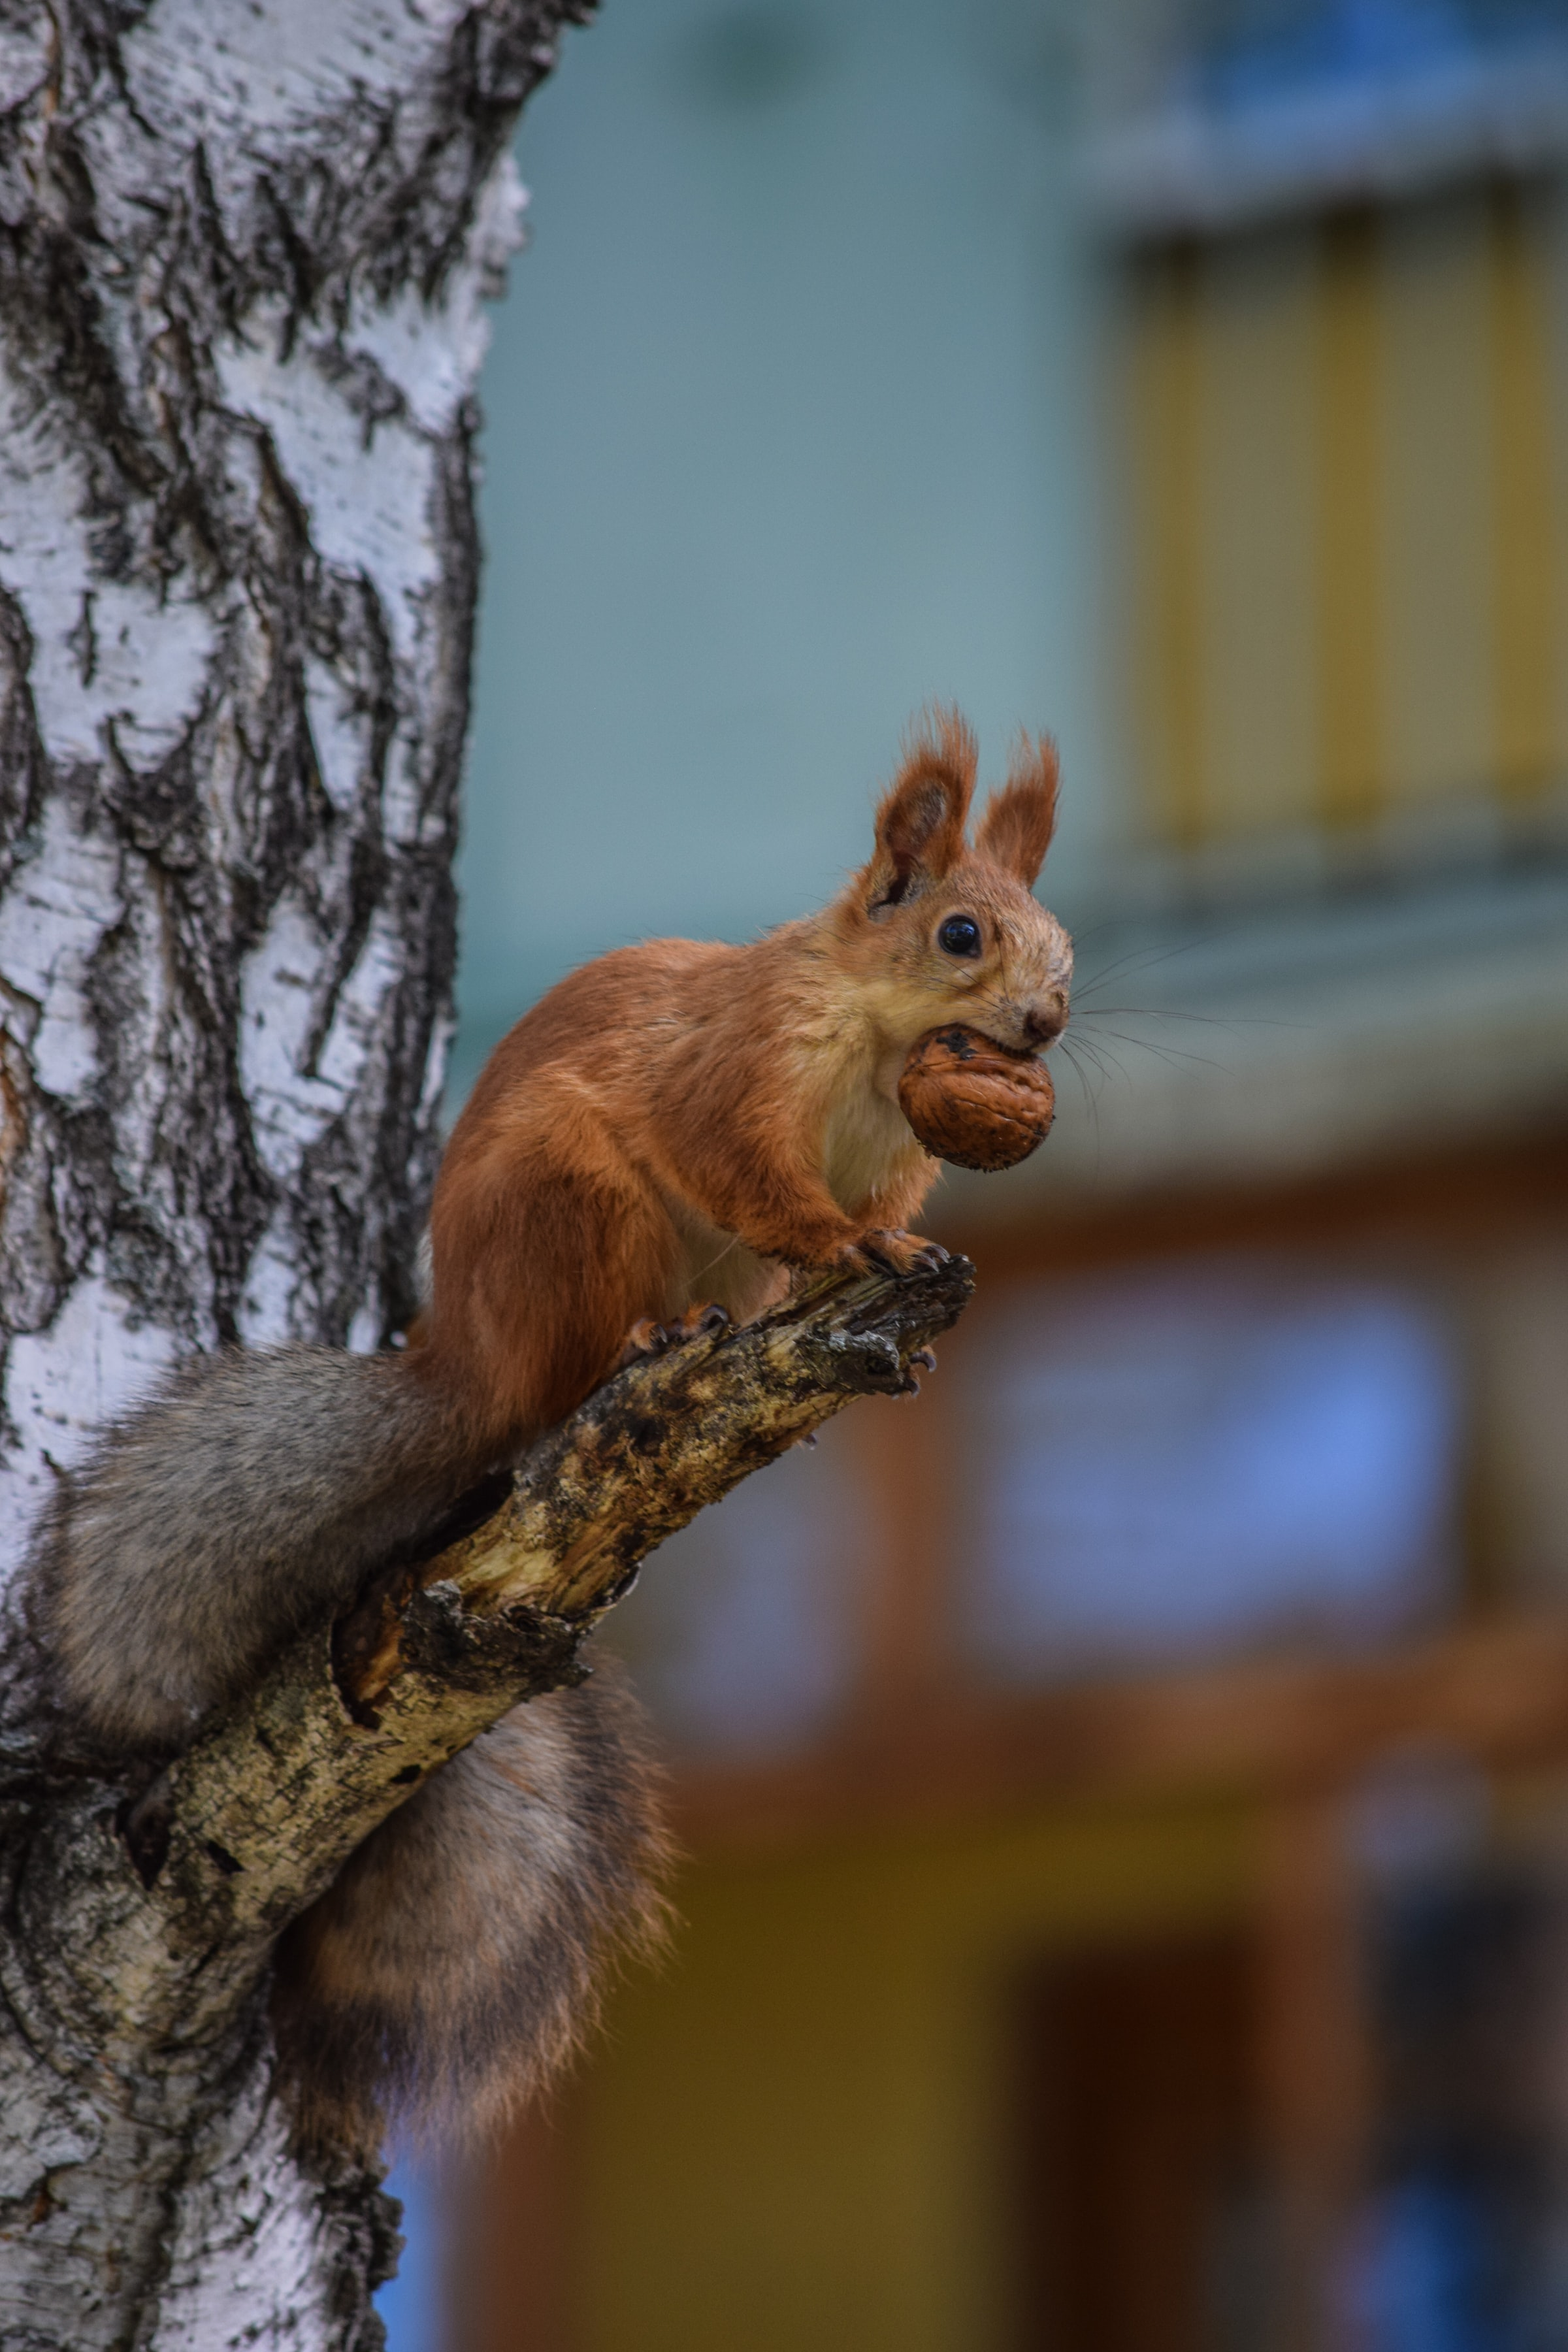 145528 download wallpaper Animals, Squirrel, Rodent, Sight, Opinion, Fluffy, Wood, Tree screensavers and pictures for free